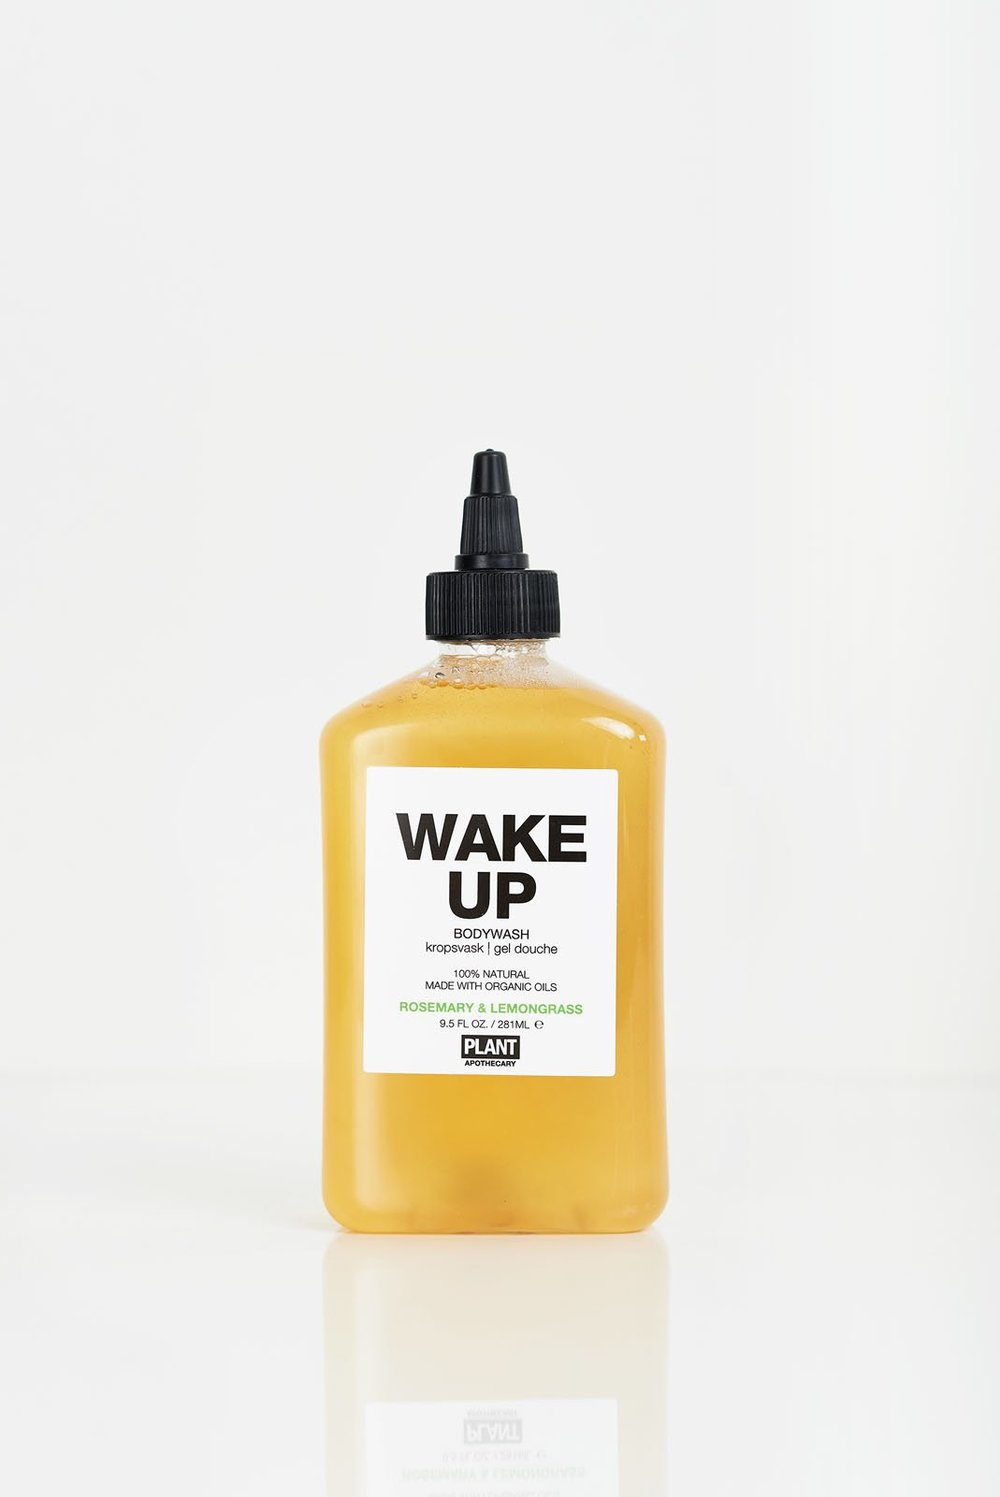 PLANT  - ROSEMARY + LEMONGRASS ORGANIC BODY WASH  $20